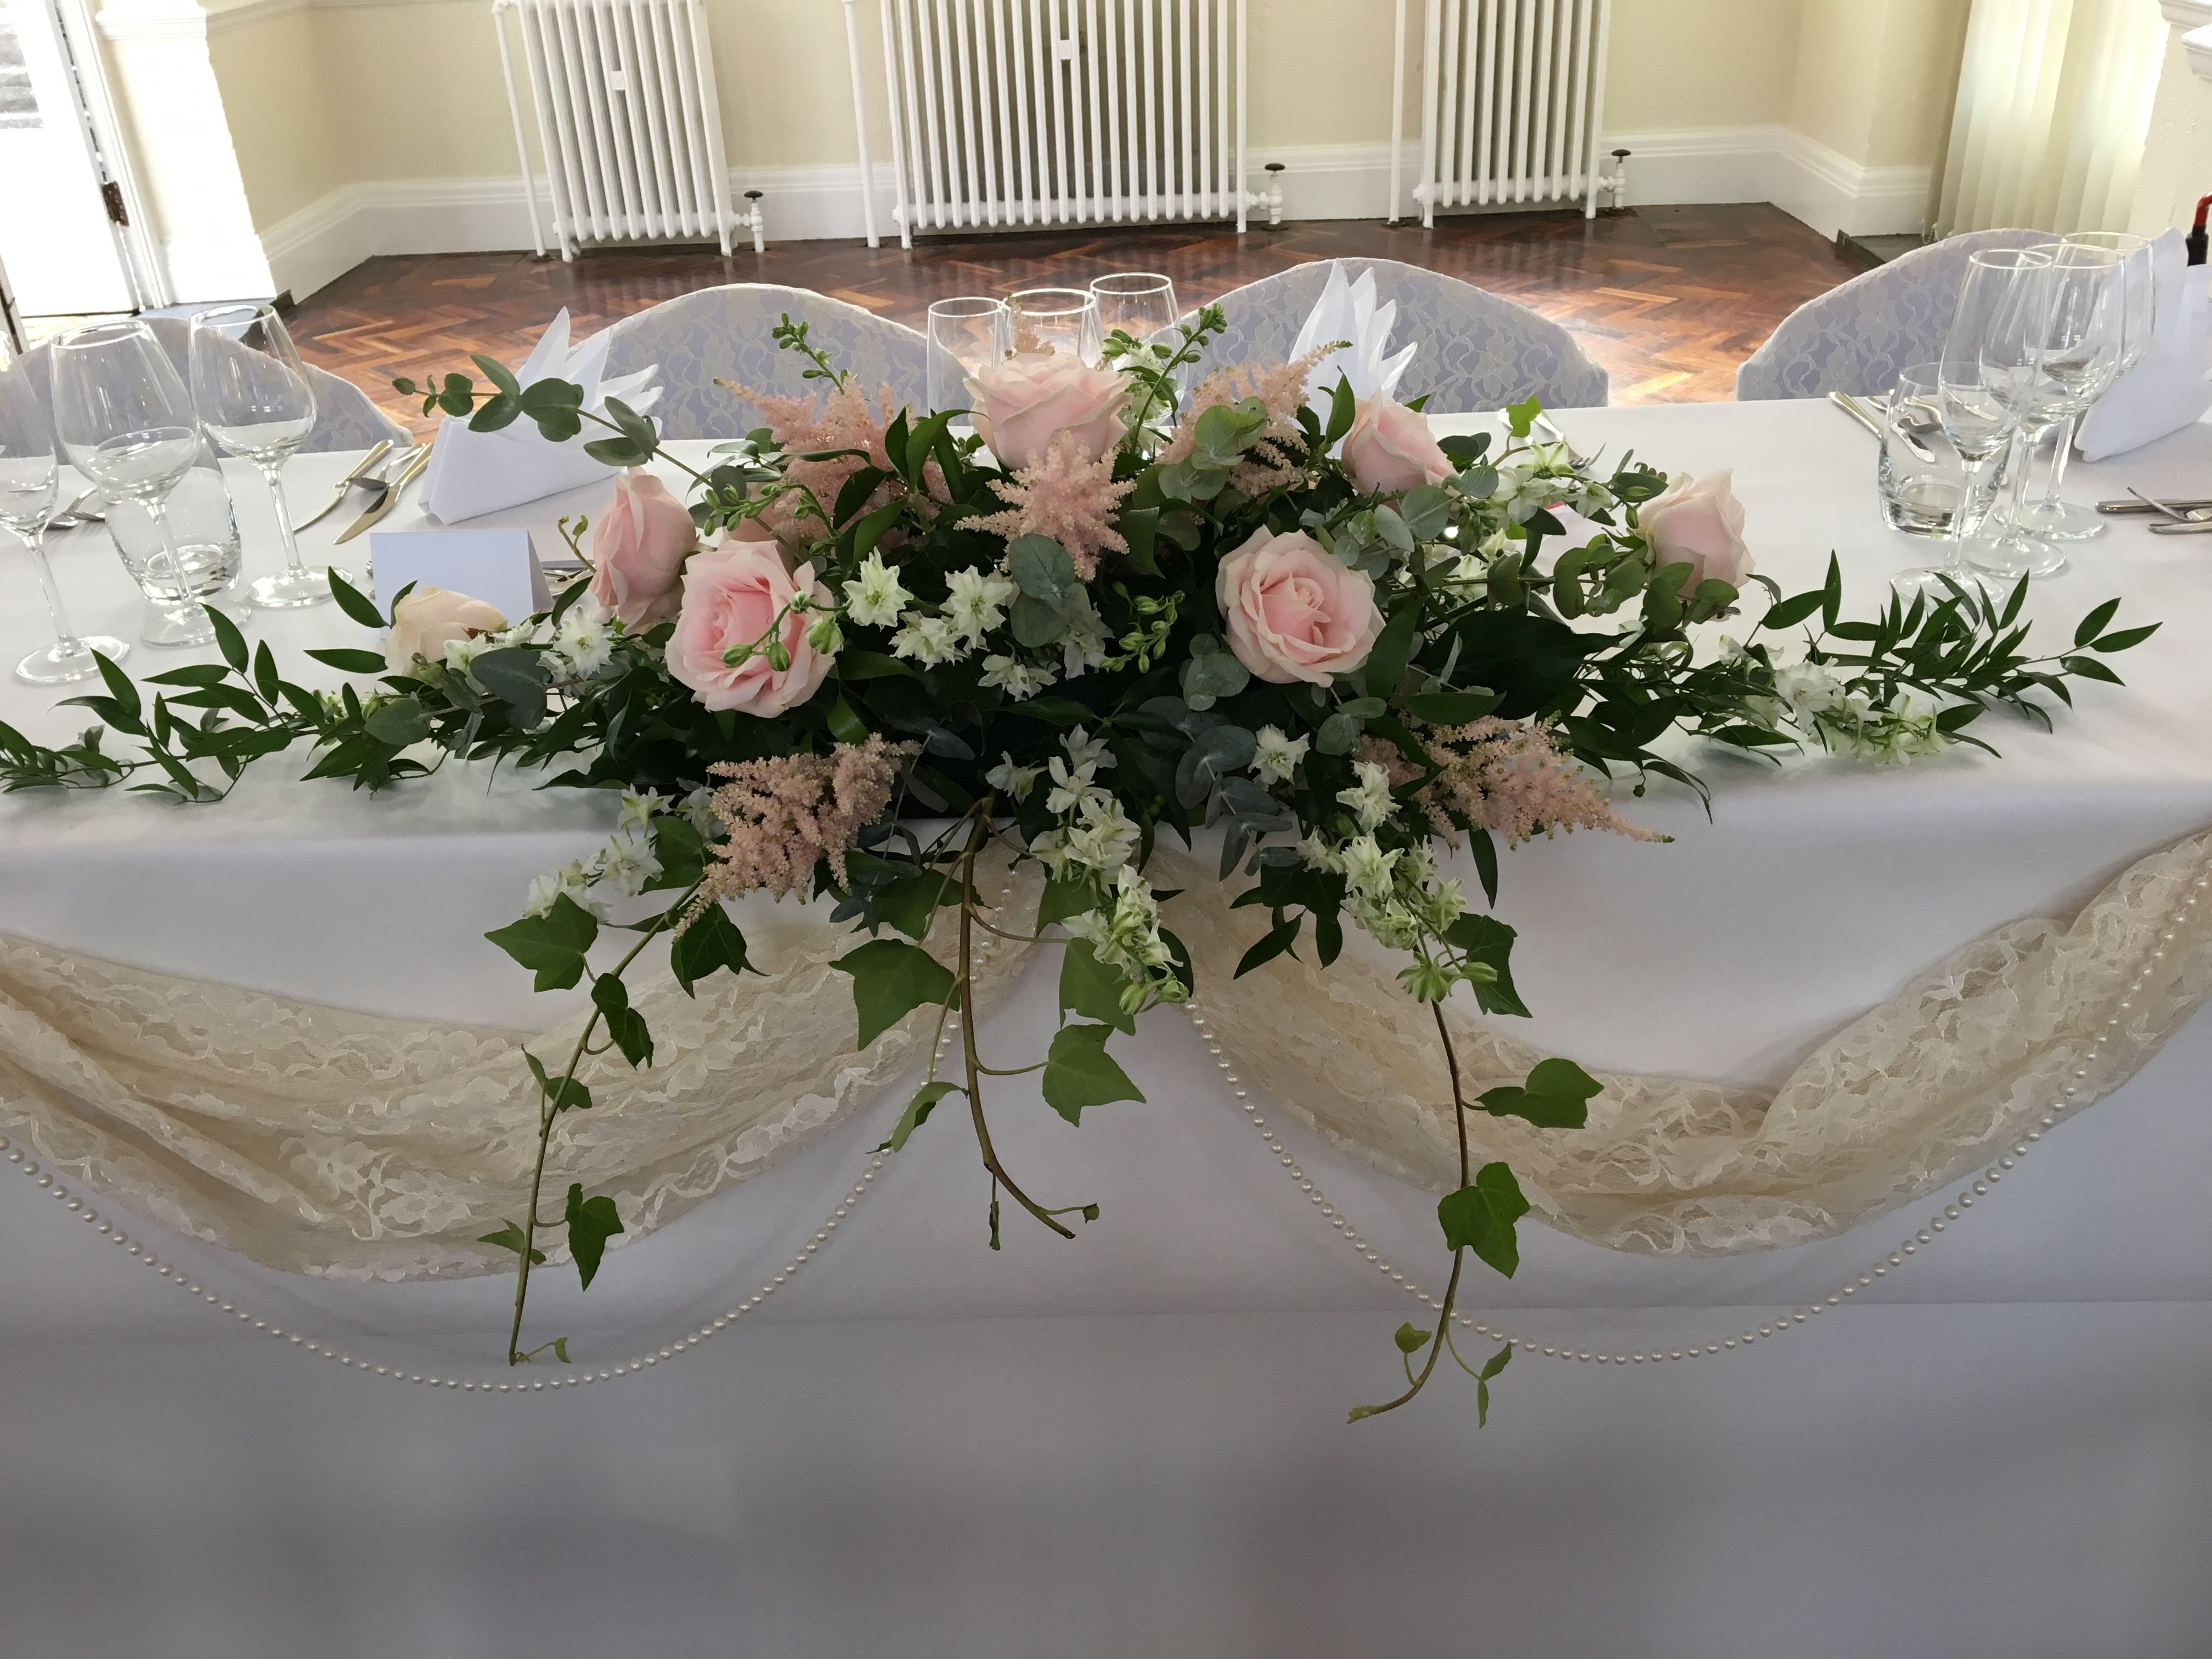 Latest Photo Bridal Flowers Gypsophelia Popular Consider A Serious Amounts Of Evaluate Wh Blumengestecke Hochzeit Tischgestecke Hochzeit Blumenschmuck Hochzeit